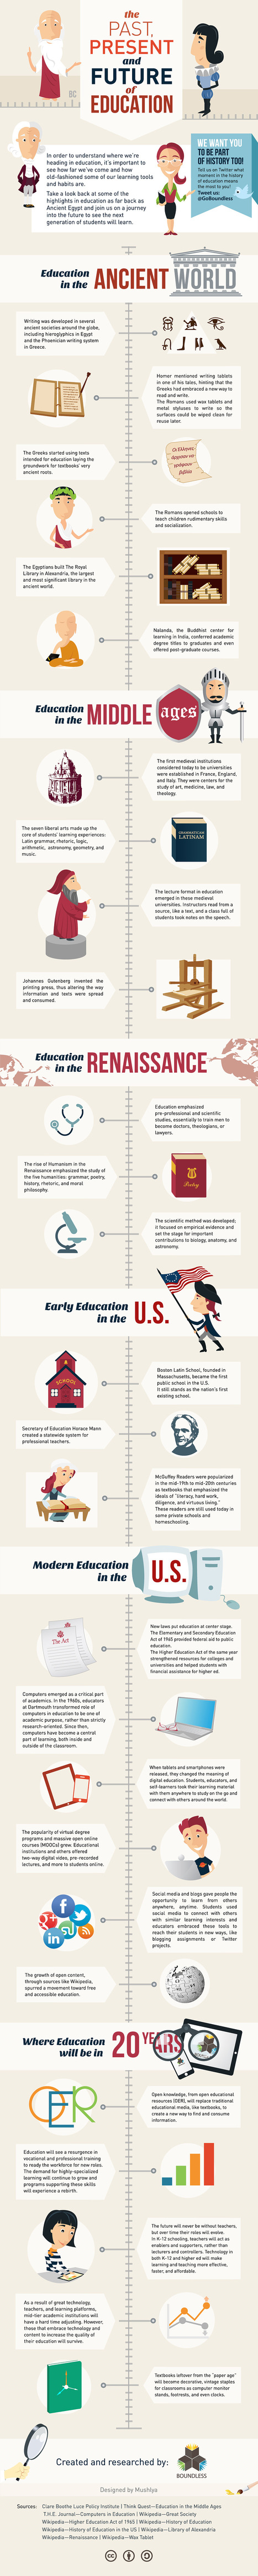 Infographic: The History of Education | Historia e Tecnologia | Scoop.it